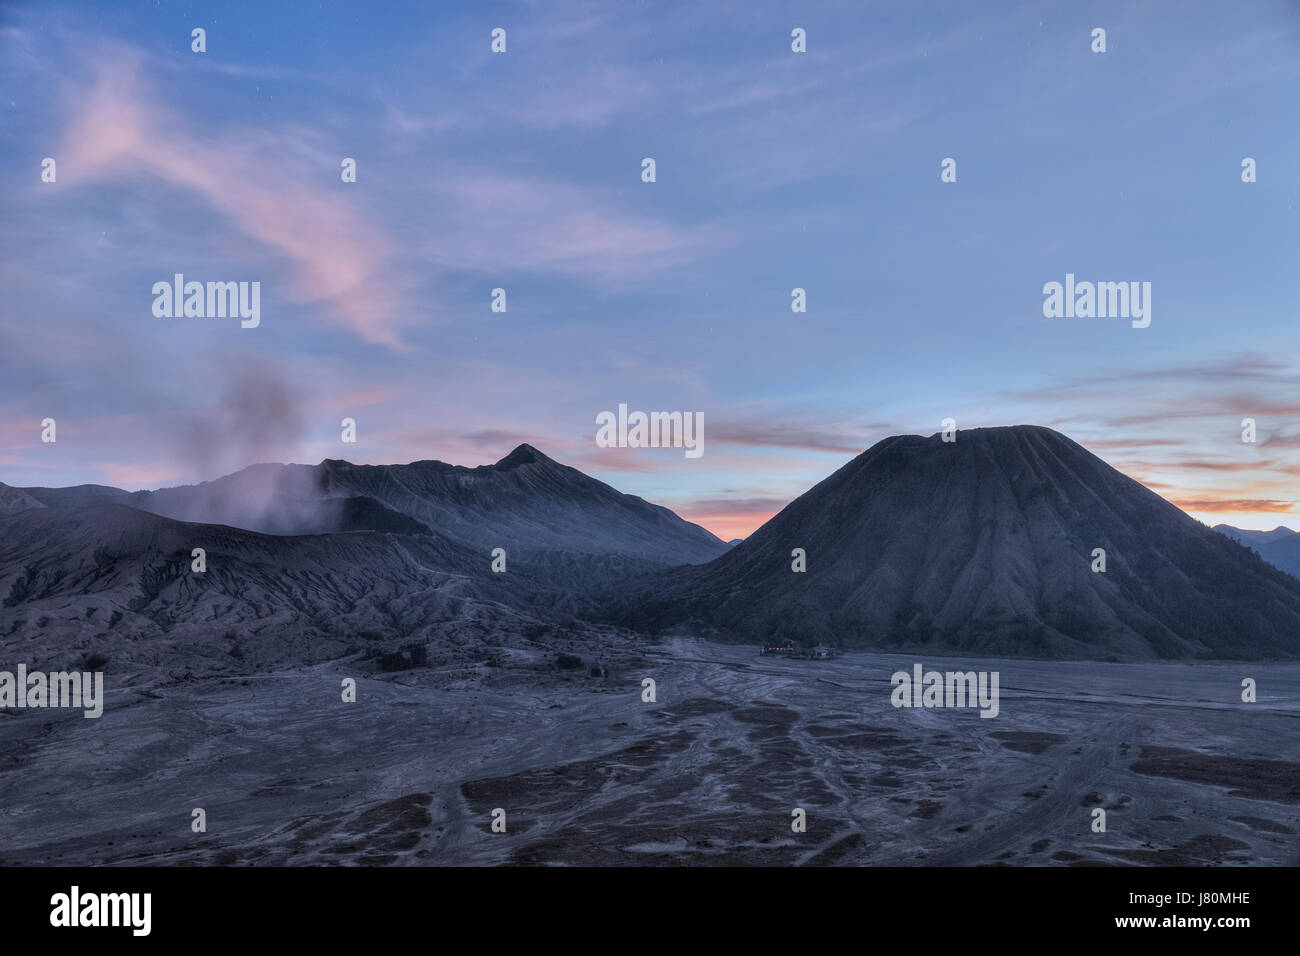 Mount Bromo, Java, Indonesia, Asia - Stock Image